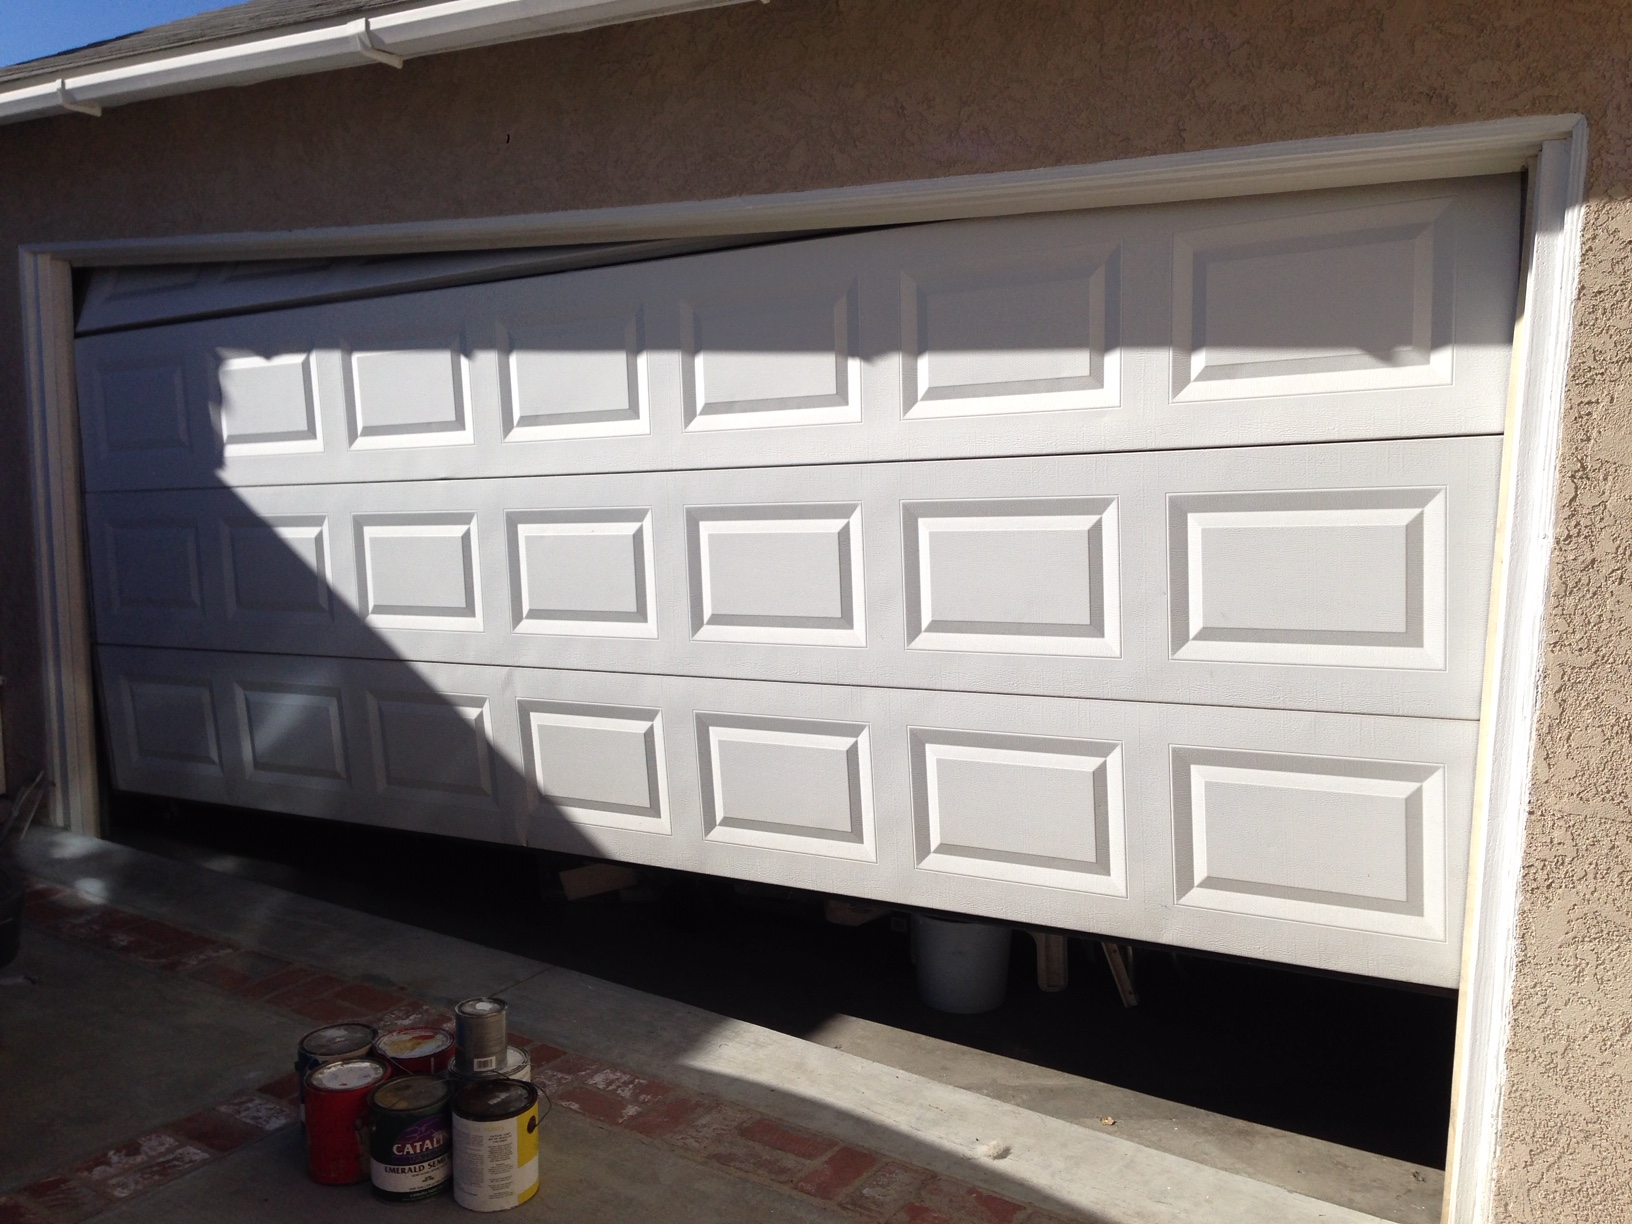 Chamberlain Garage Door in Pacific Palisades